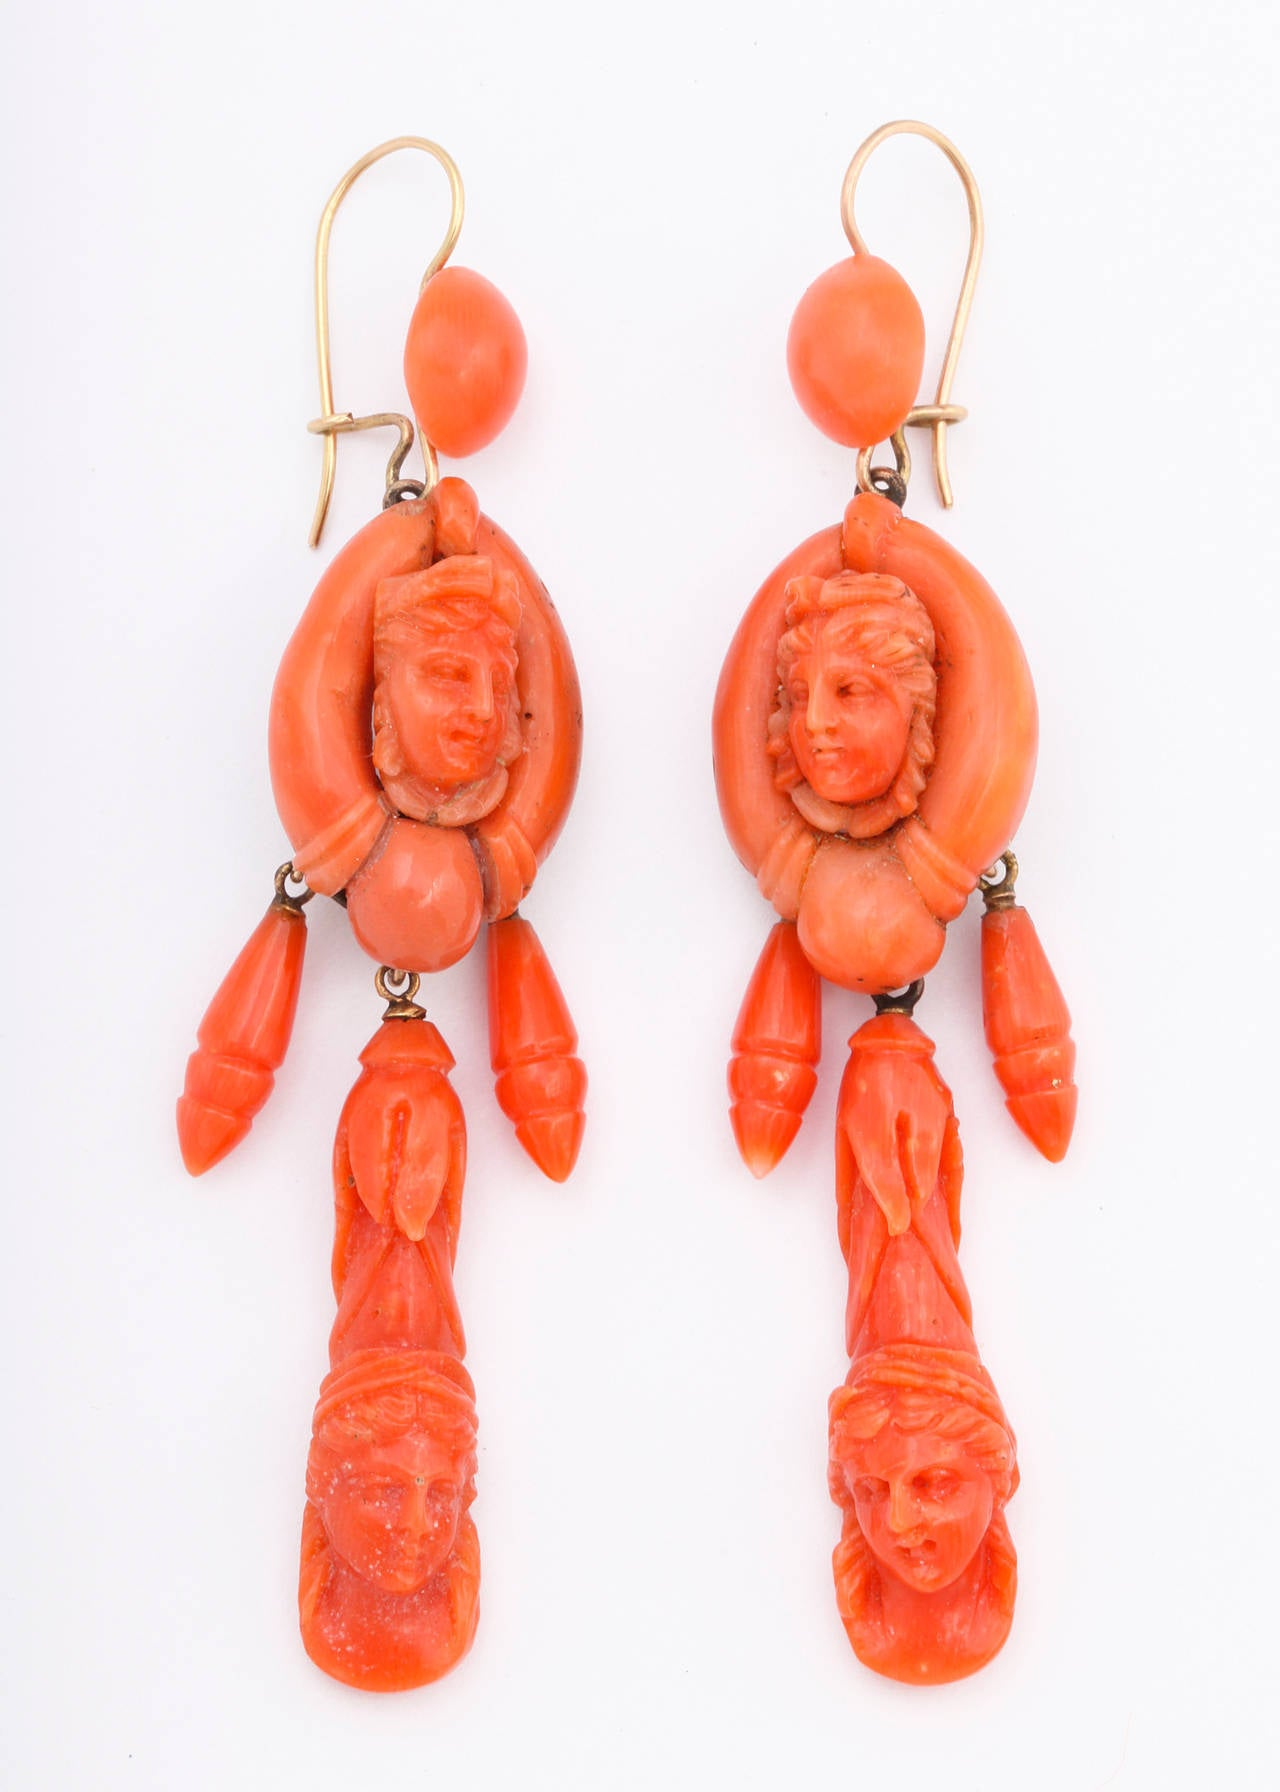 Victorian Carved Classical Neapolitan Coral Earrings 4